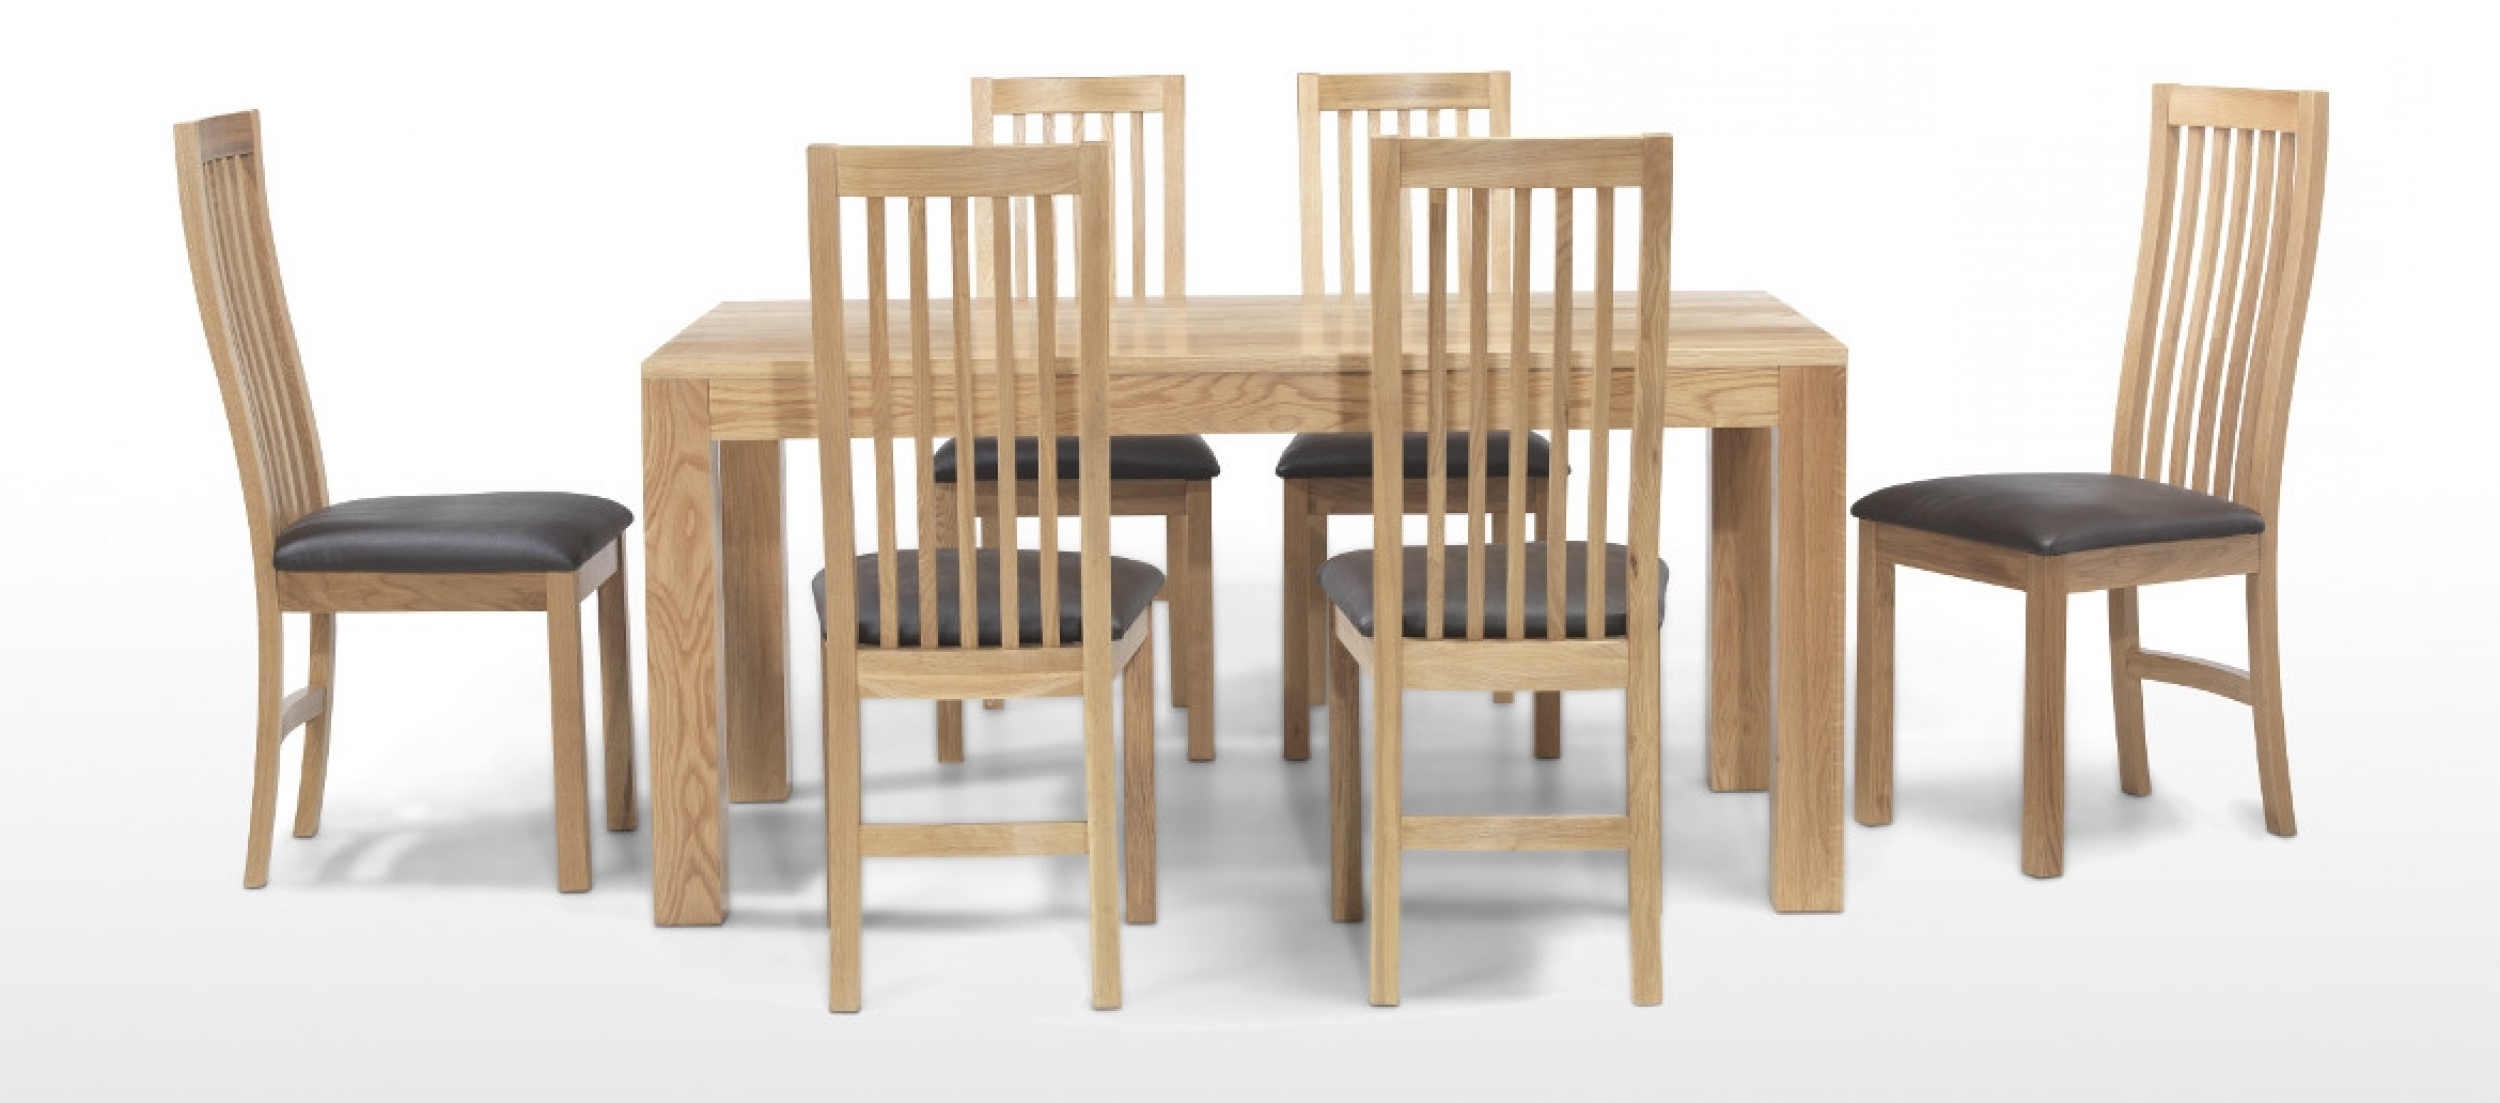 Quercus Living Pertaining To Extendable Oak Dining Tables And Chairs (View 15 of 25)